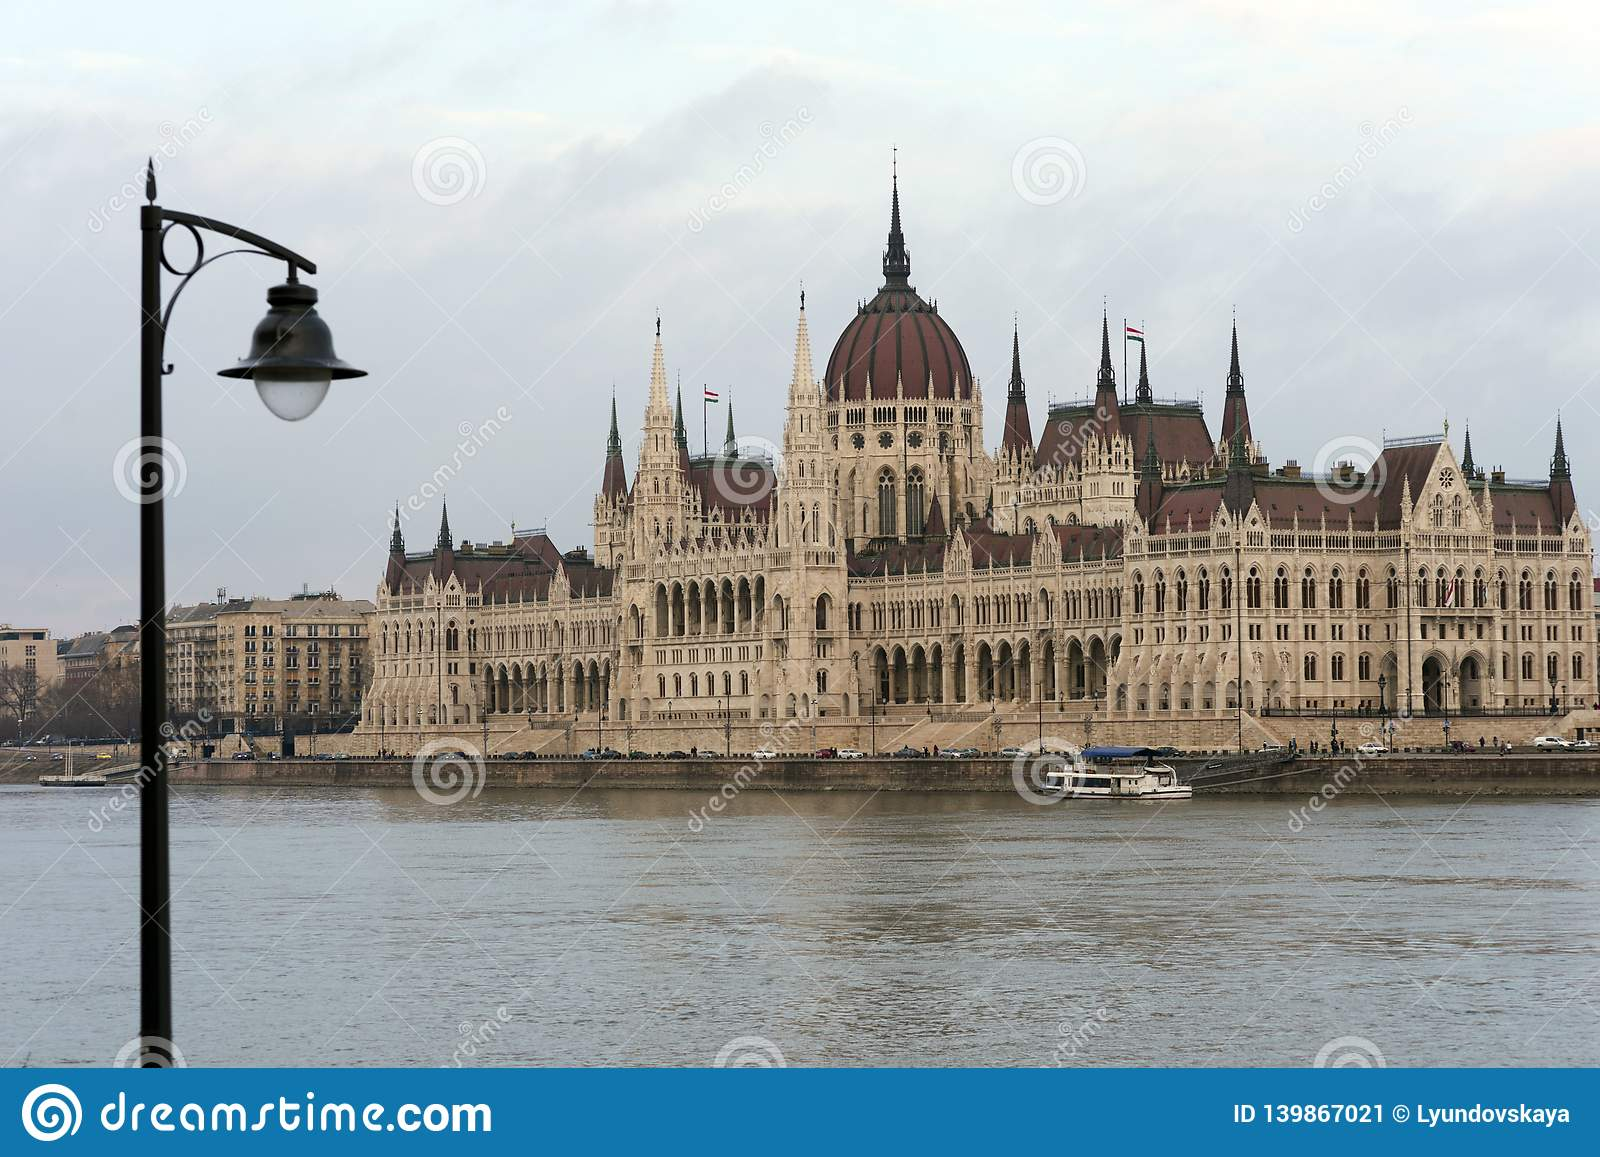 The building of the Hungarian Parliament on the banks of the Danube in Budapest is the main attraction of the Hungarian capital.